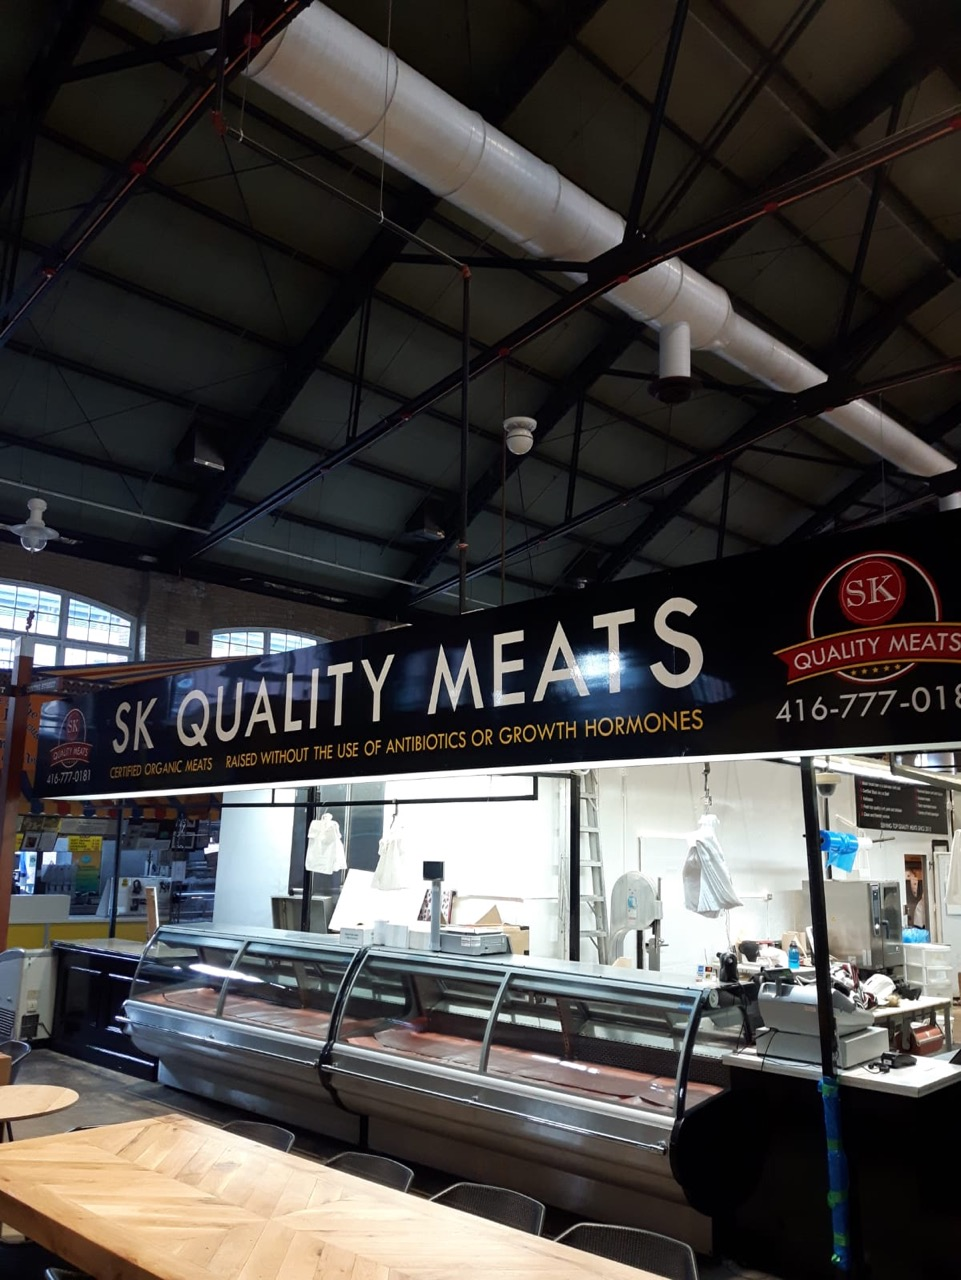 SK Quality Meats